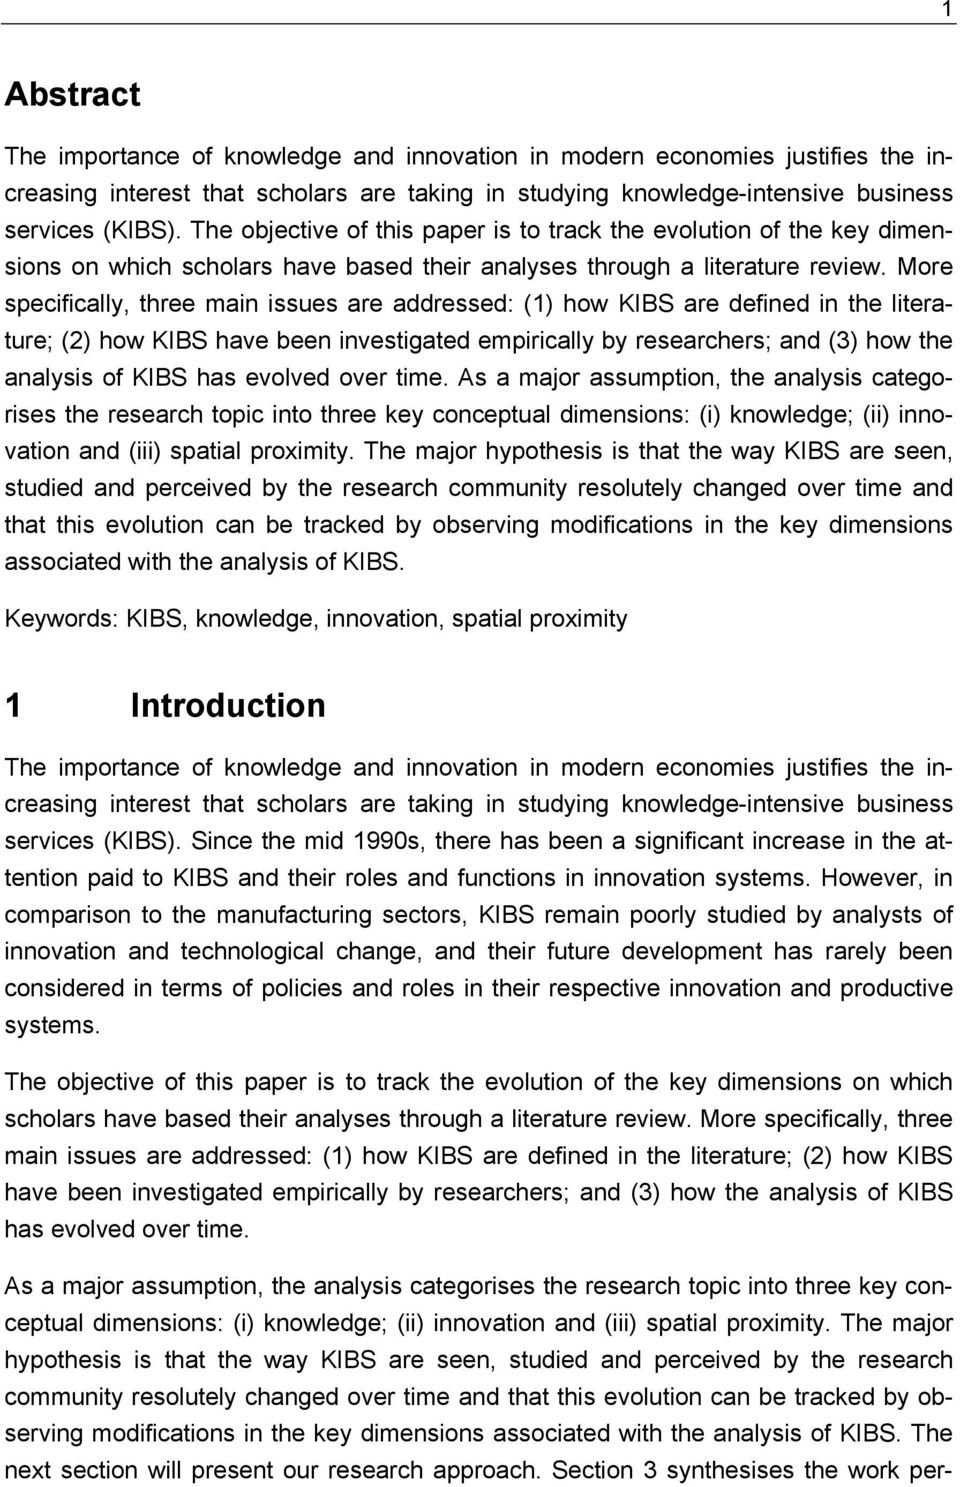 More specifically, three main issues are addressed: (1) how KIBS are defined in the literature; (2) how KIBS have been investigated empirically by researchers; and (3) how the analysis of KIBS has